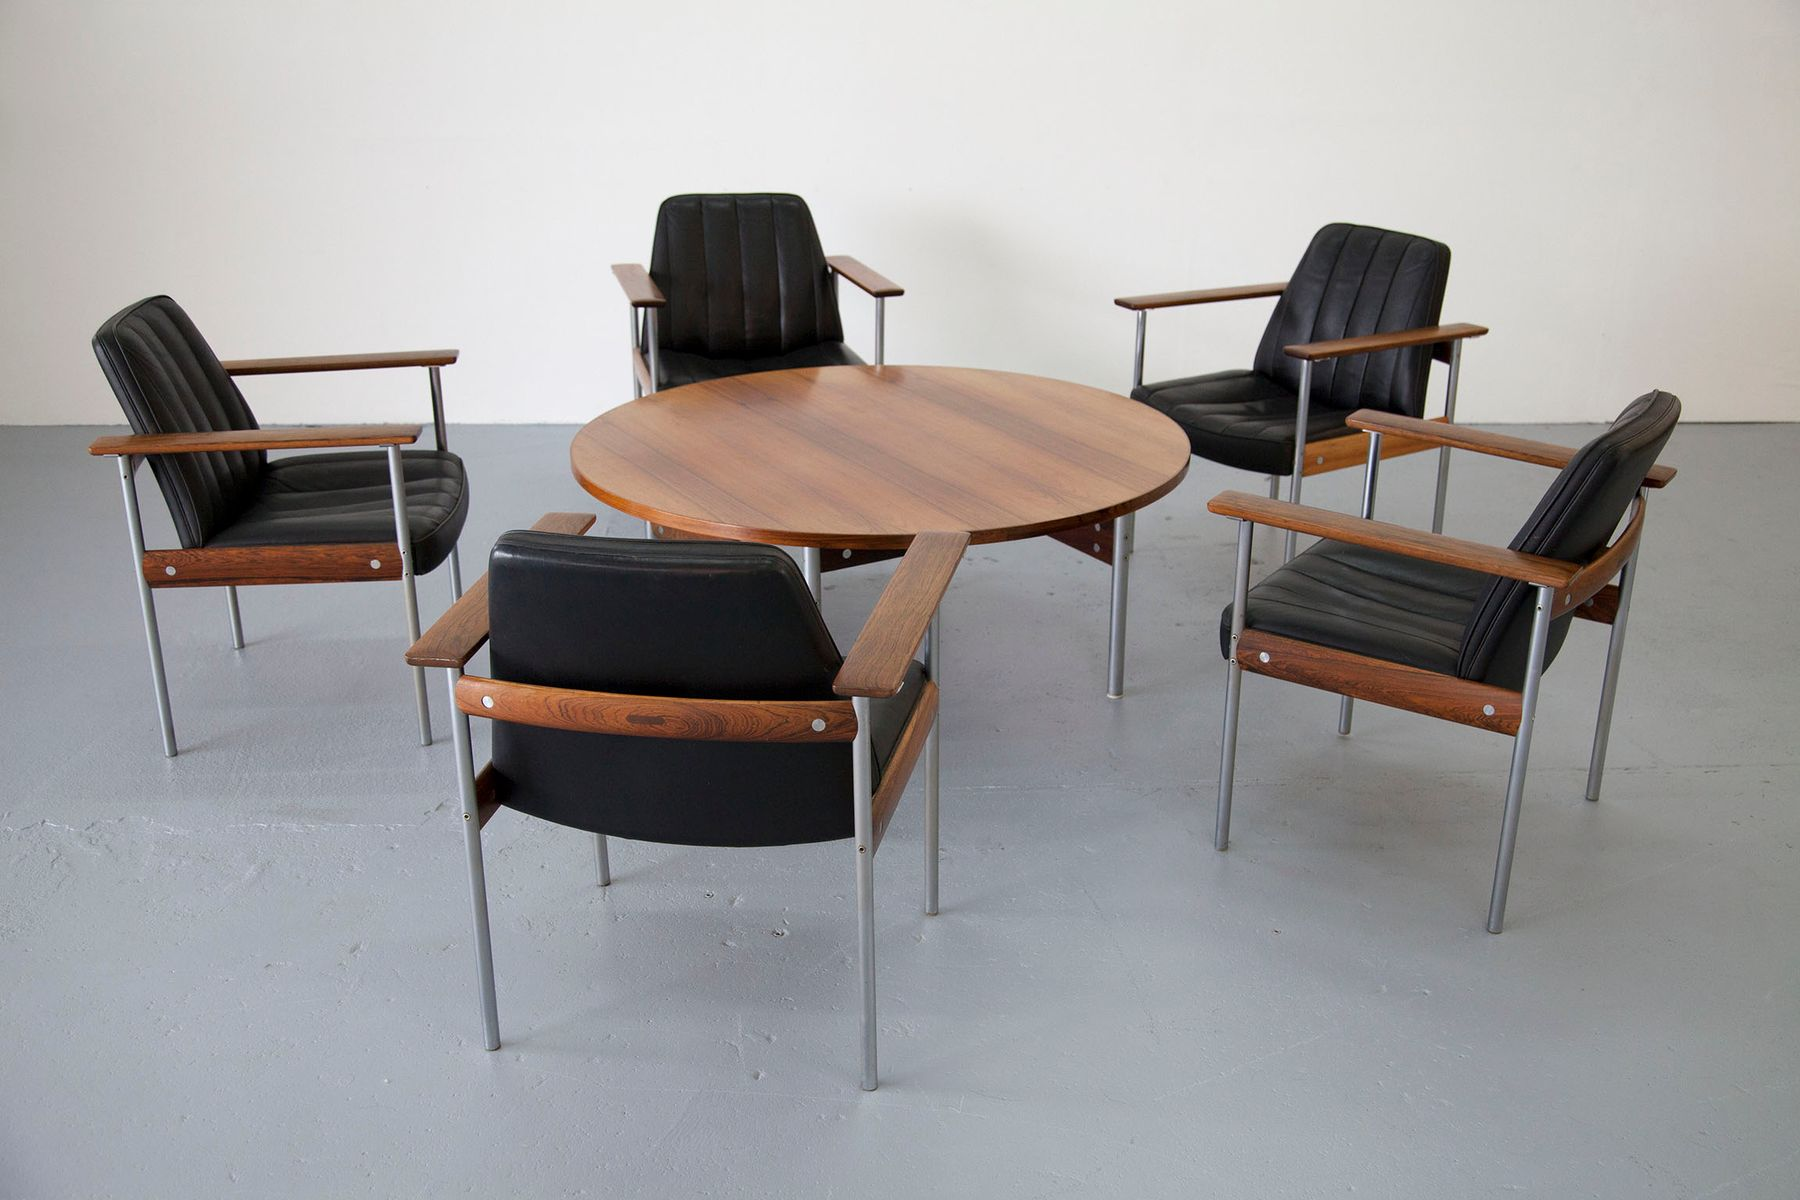 Vintage Lounge Set with Five Chairs & Coffee Table by Sven Ivar